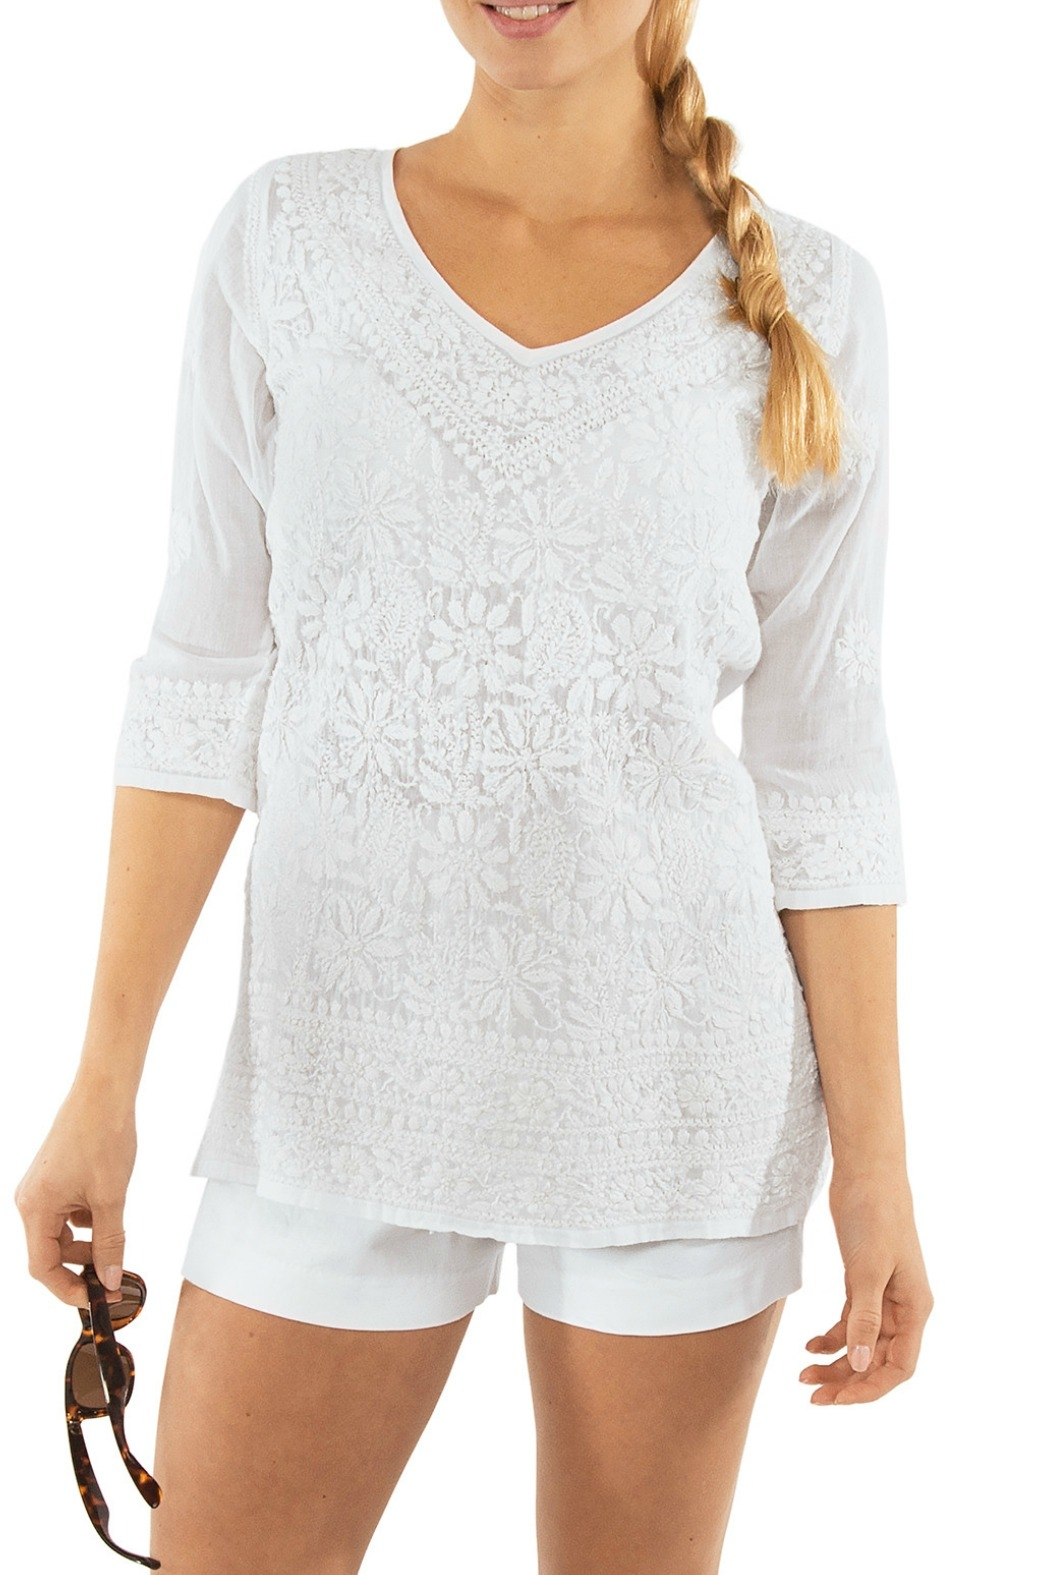 Gretchen Scott Copacabana Hand Embroidered Tunic - Front Cropped Image